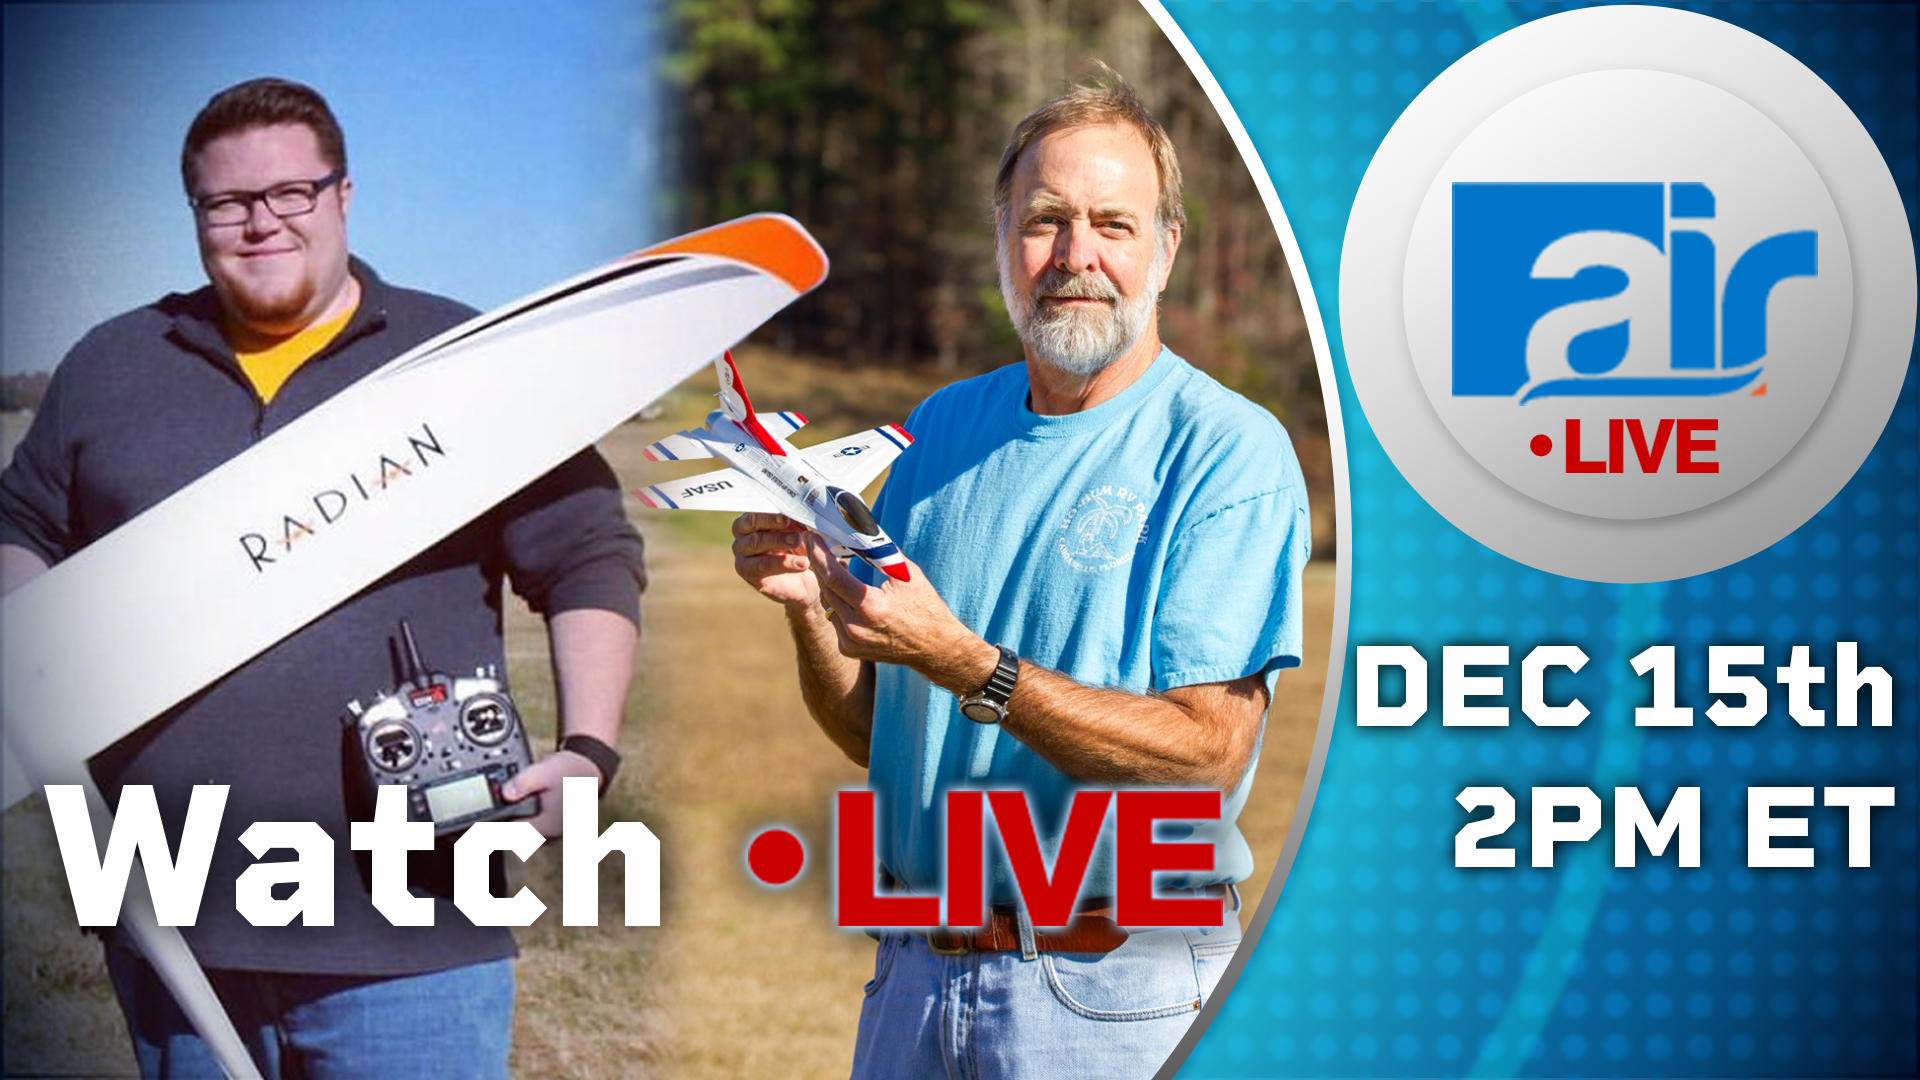 Model Aviation contributor Greg Gimlick guests hosts this episode of AMA Air